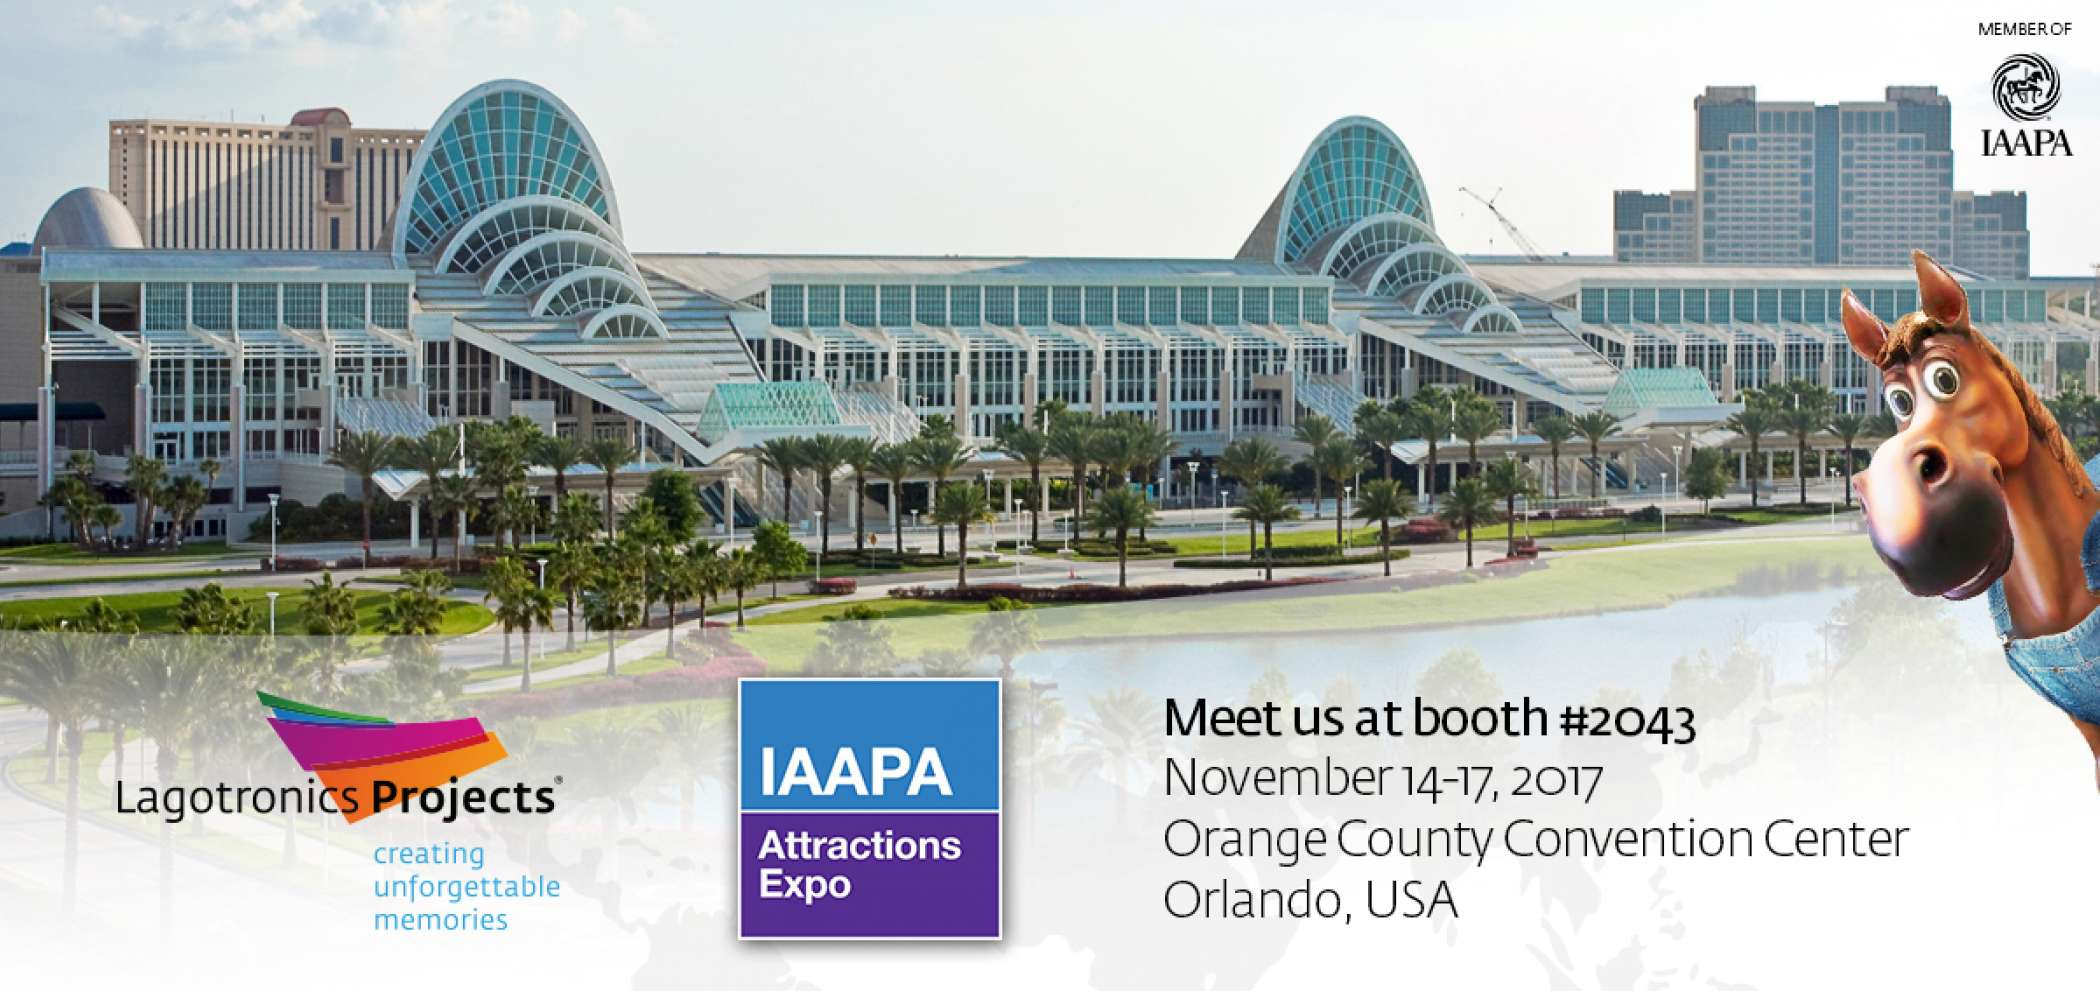 Lagotronics Projects Iaapa 2017 V2